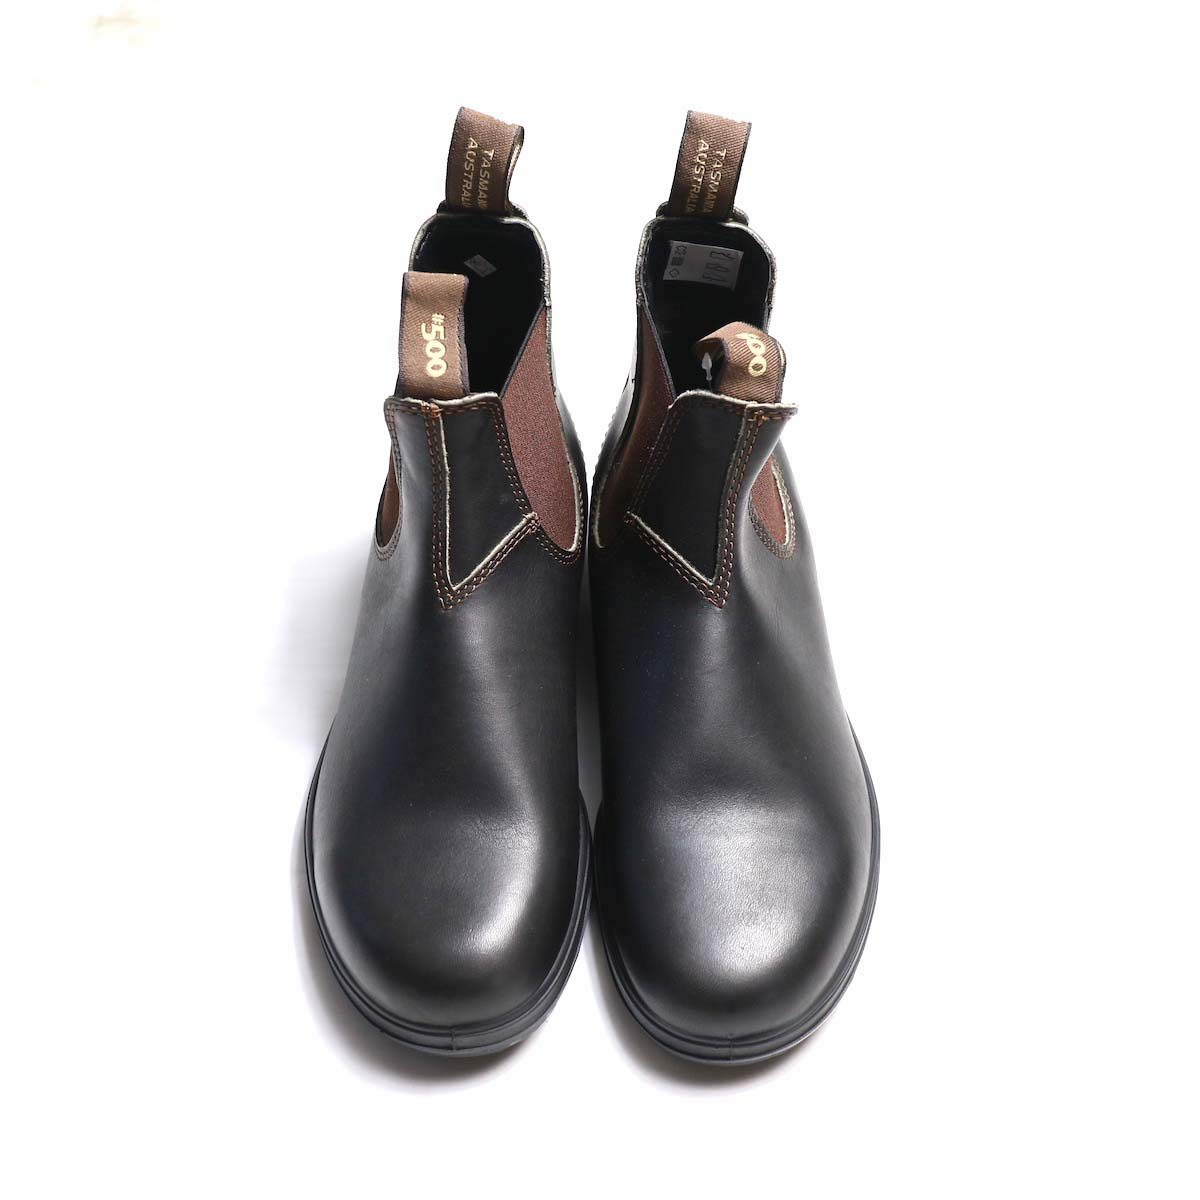 BLUNDSTONE / Side Gore Boots #500 (Brown) 上から